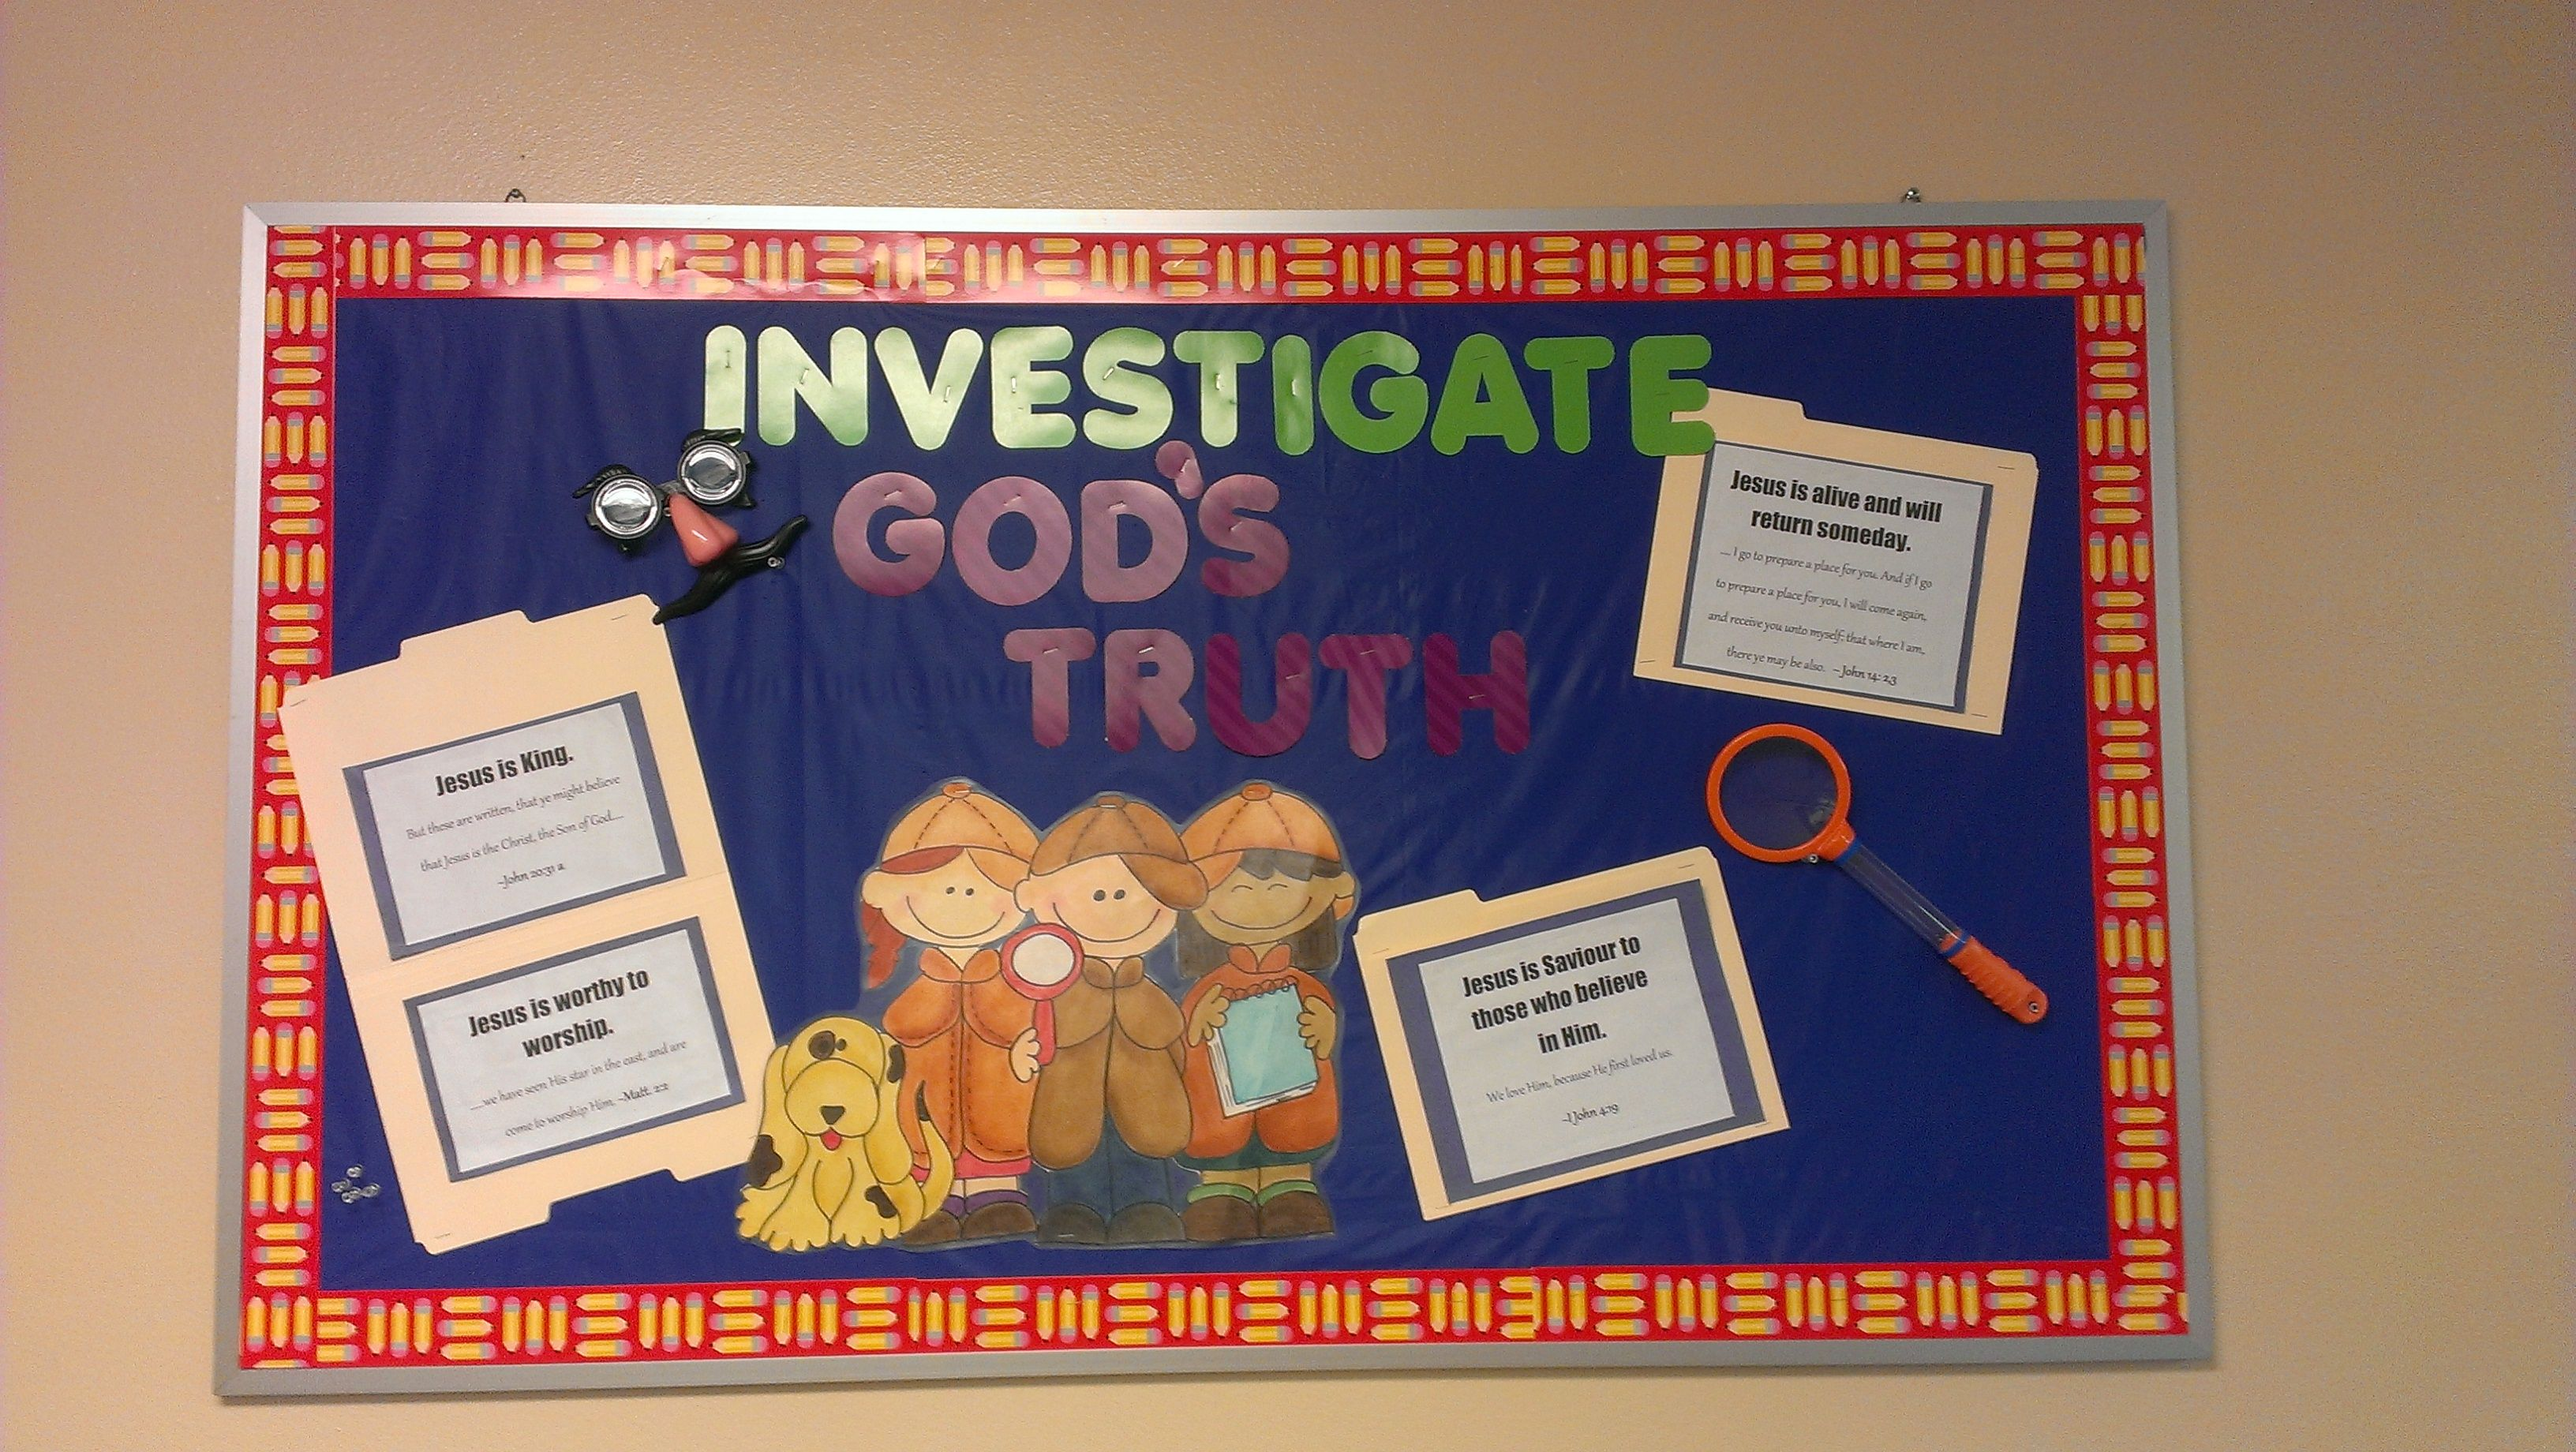 Investigate gods truths bulletin board vbs themes vbs